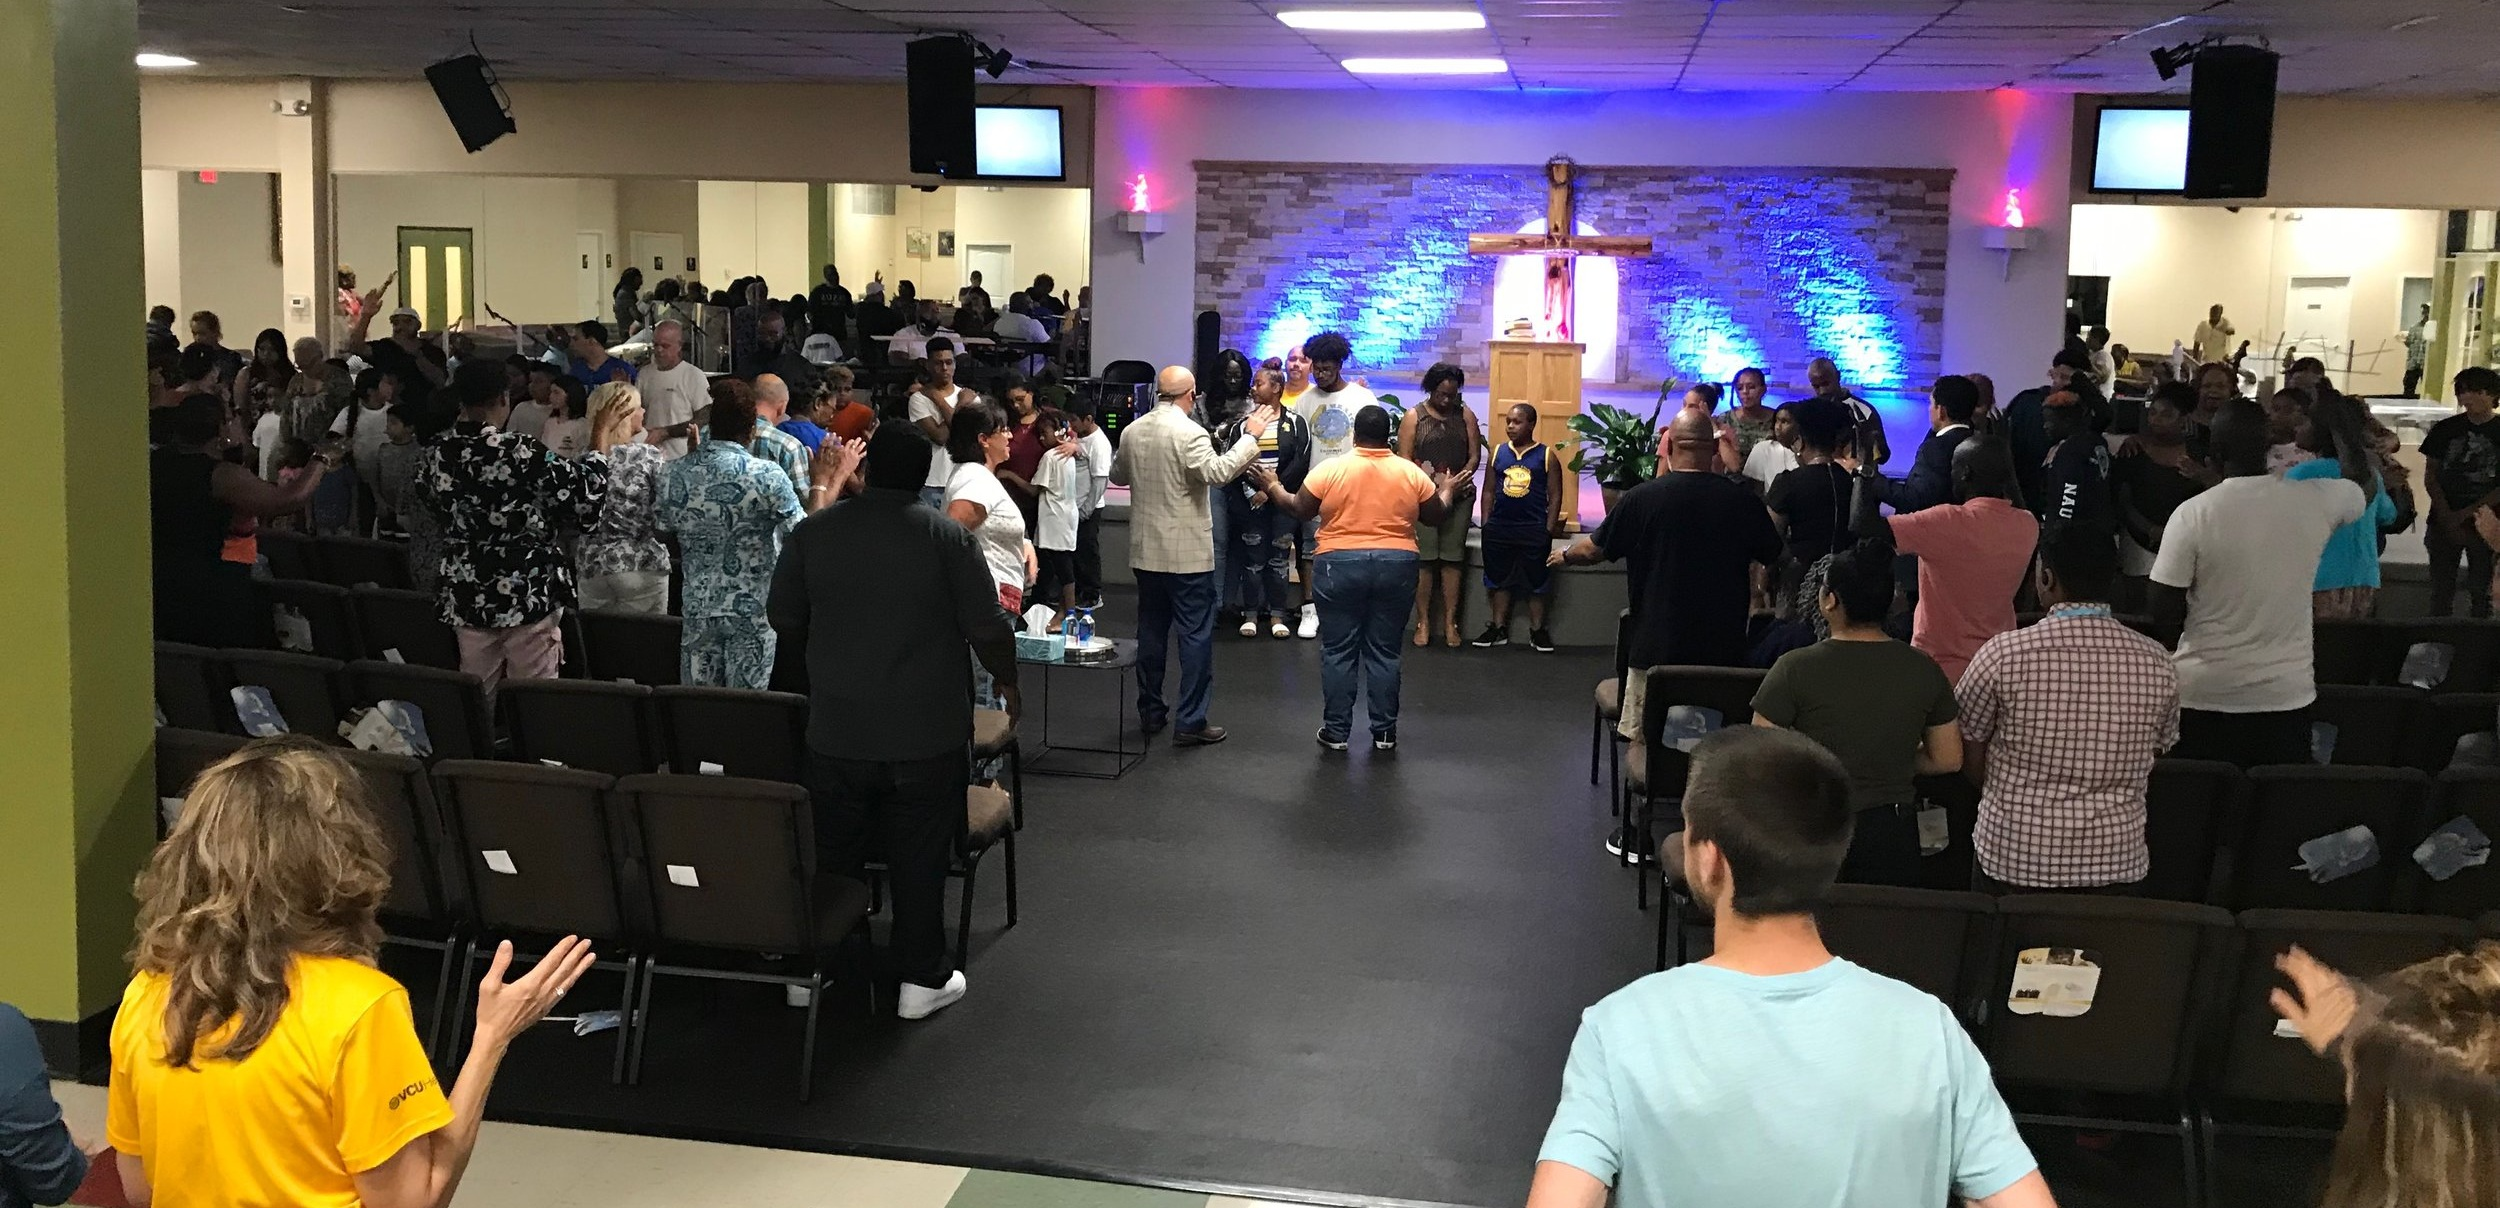 WELCOME TO M3 CHURCH    Sharing the love of God with no strings attached!